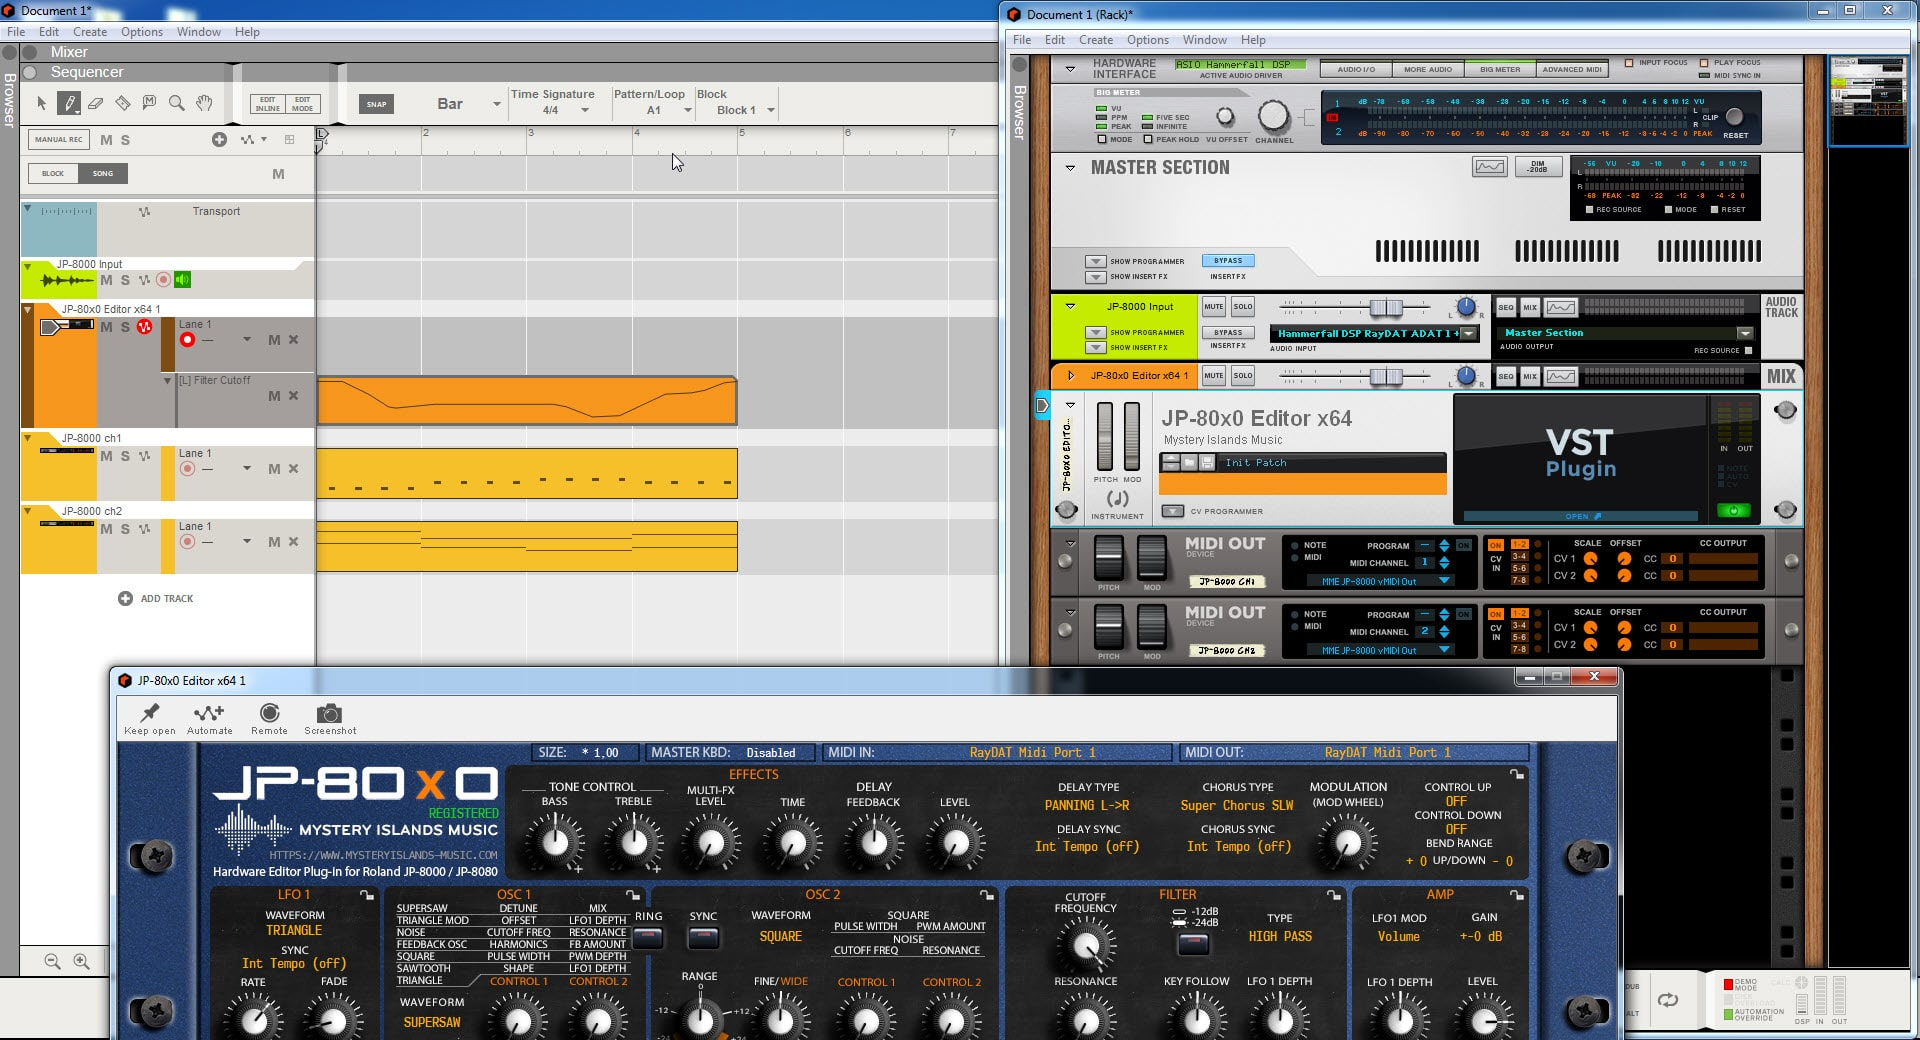 Reason Studios Config - Everything Works like well Oiled Machine